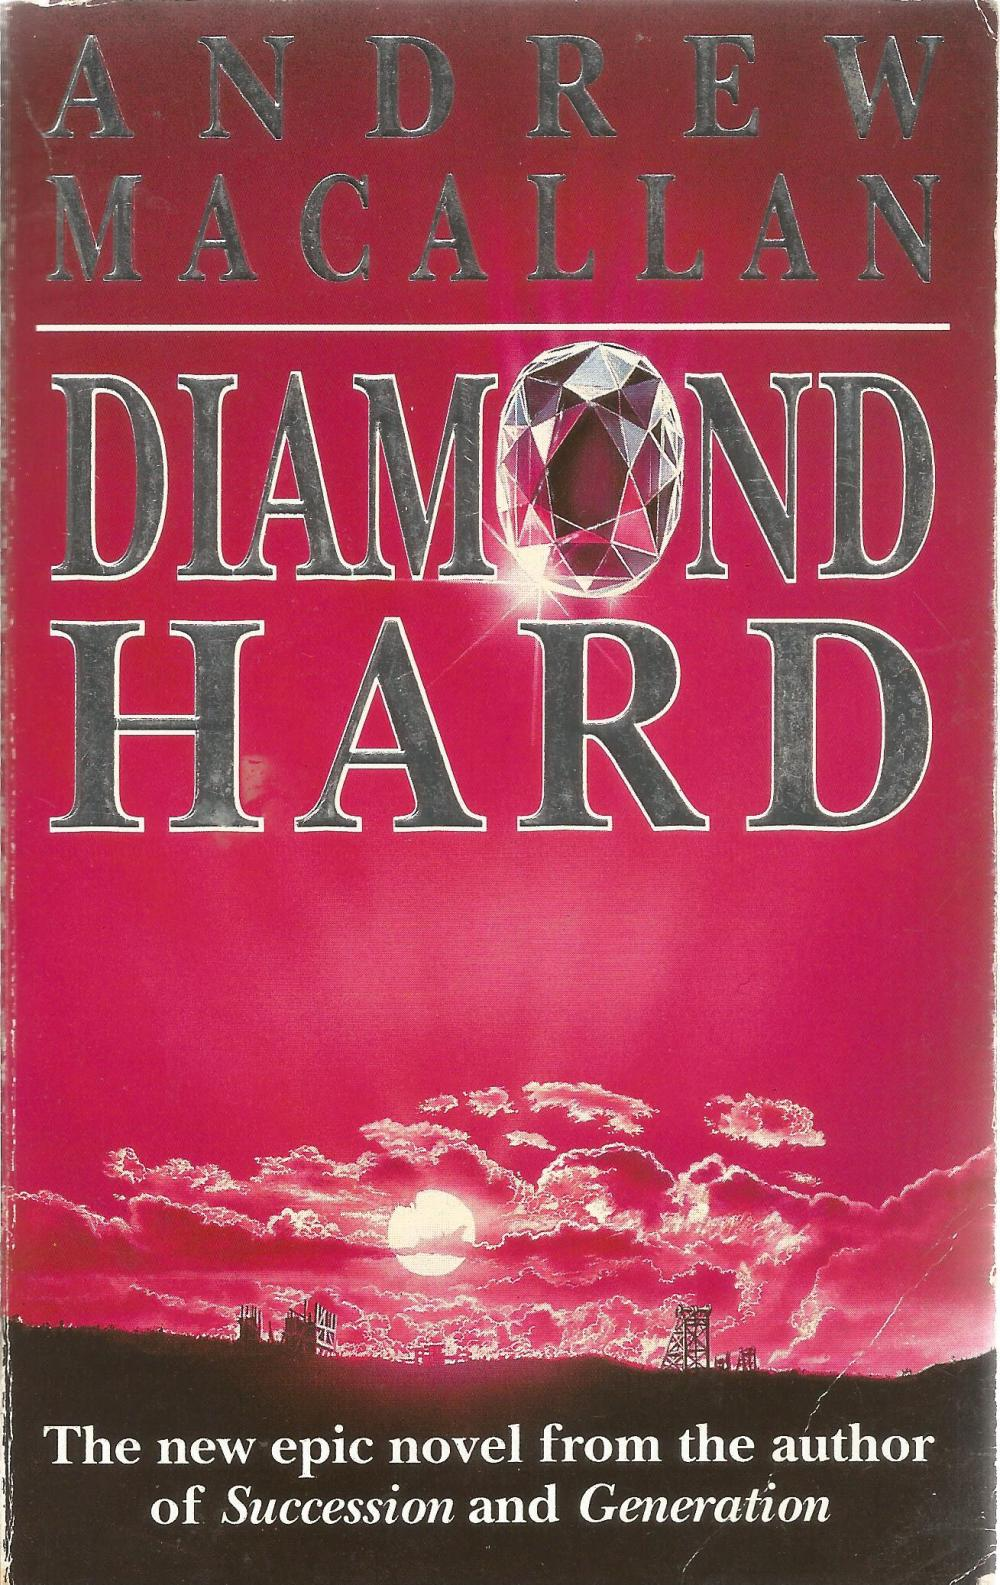 Andrew Macallan Paperback Book Diamond Hard signed by the Author on the Title Page and dated May